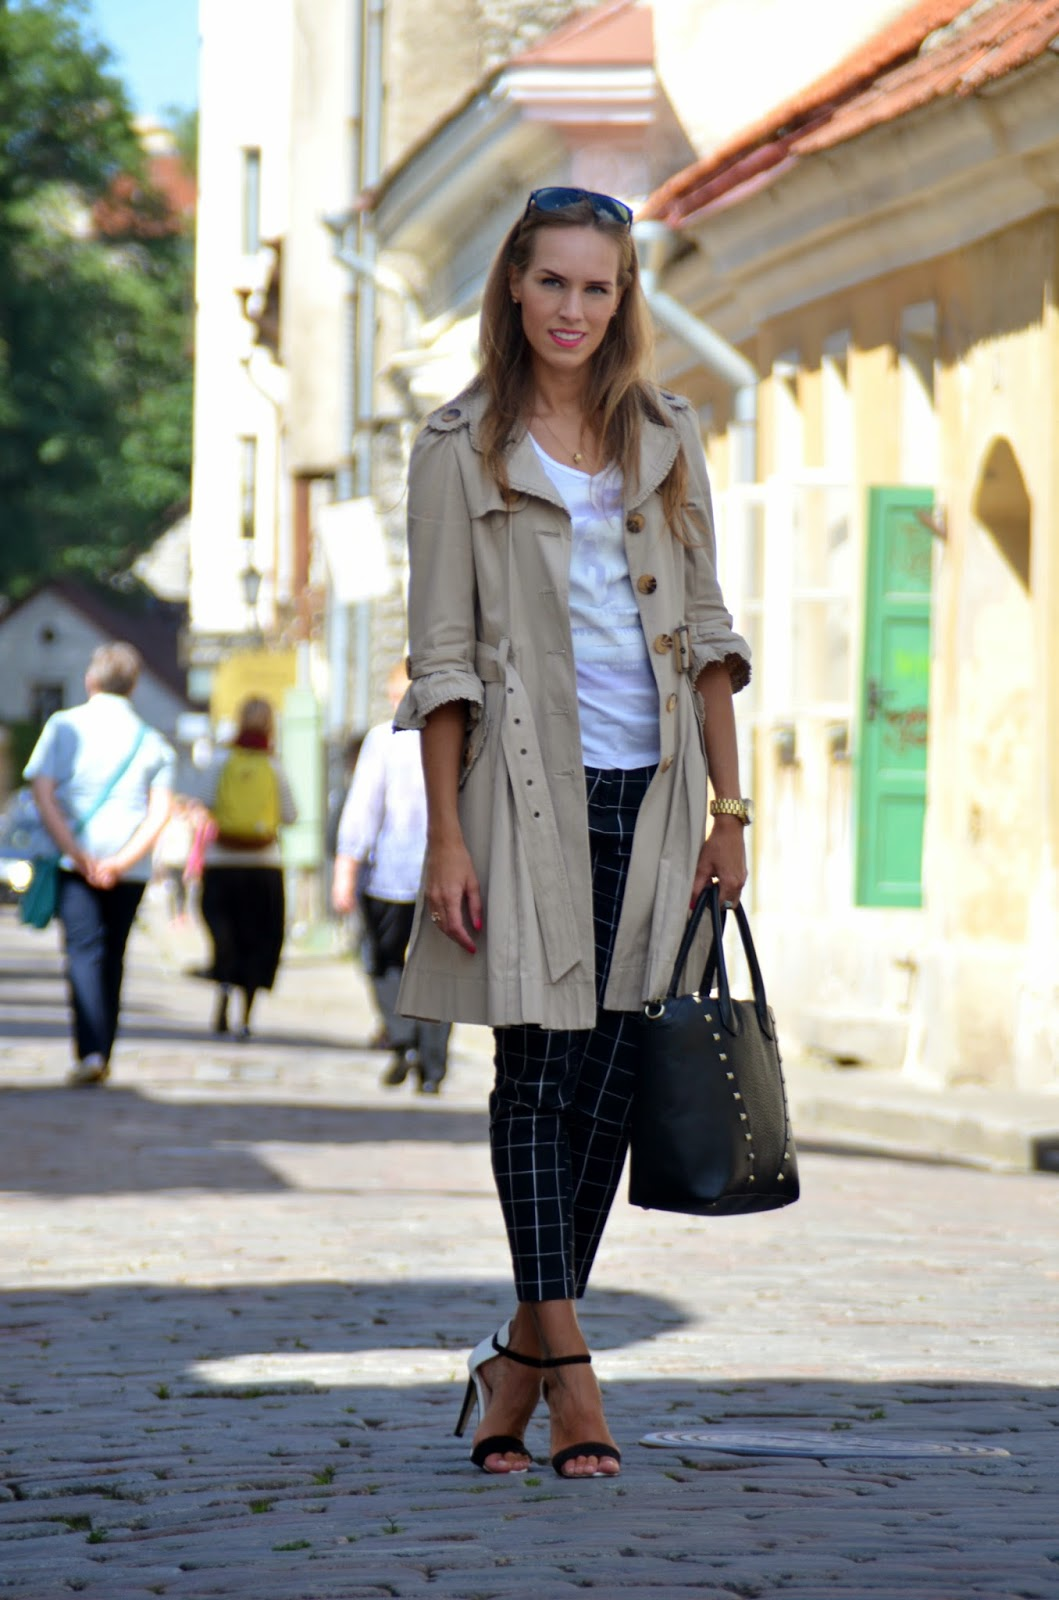 oldtown outfit heels pants coat